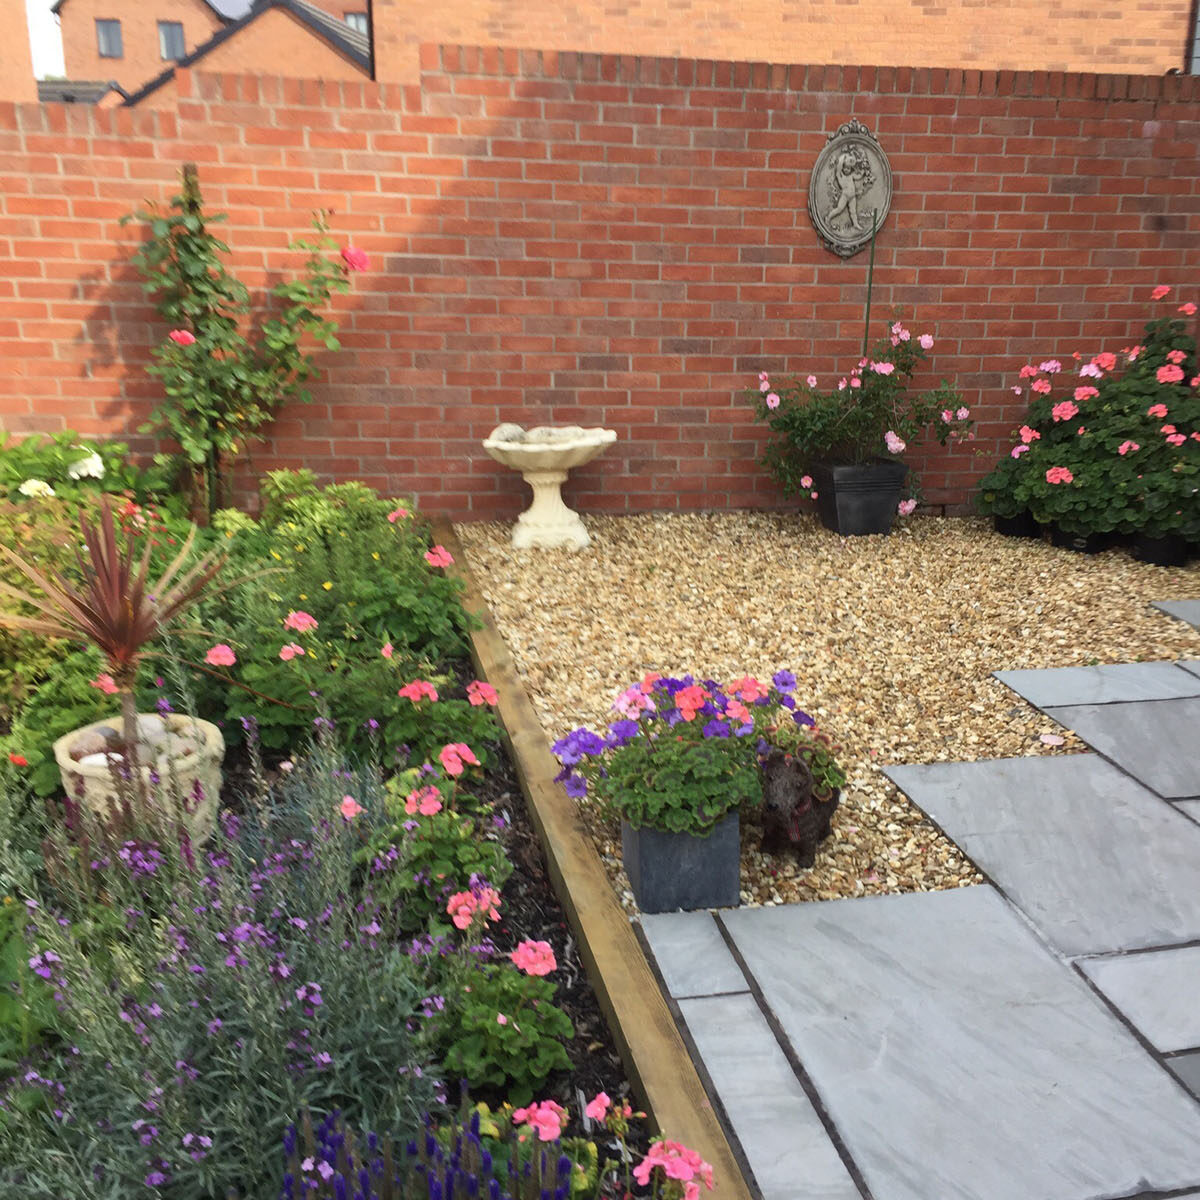 A photo of a brick-walled garden, looking across a patio and gravel area surrounded by flowerbeds and bushes.